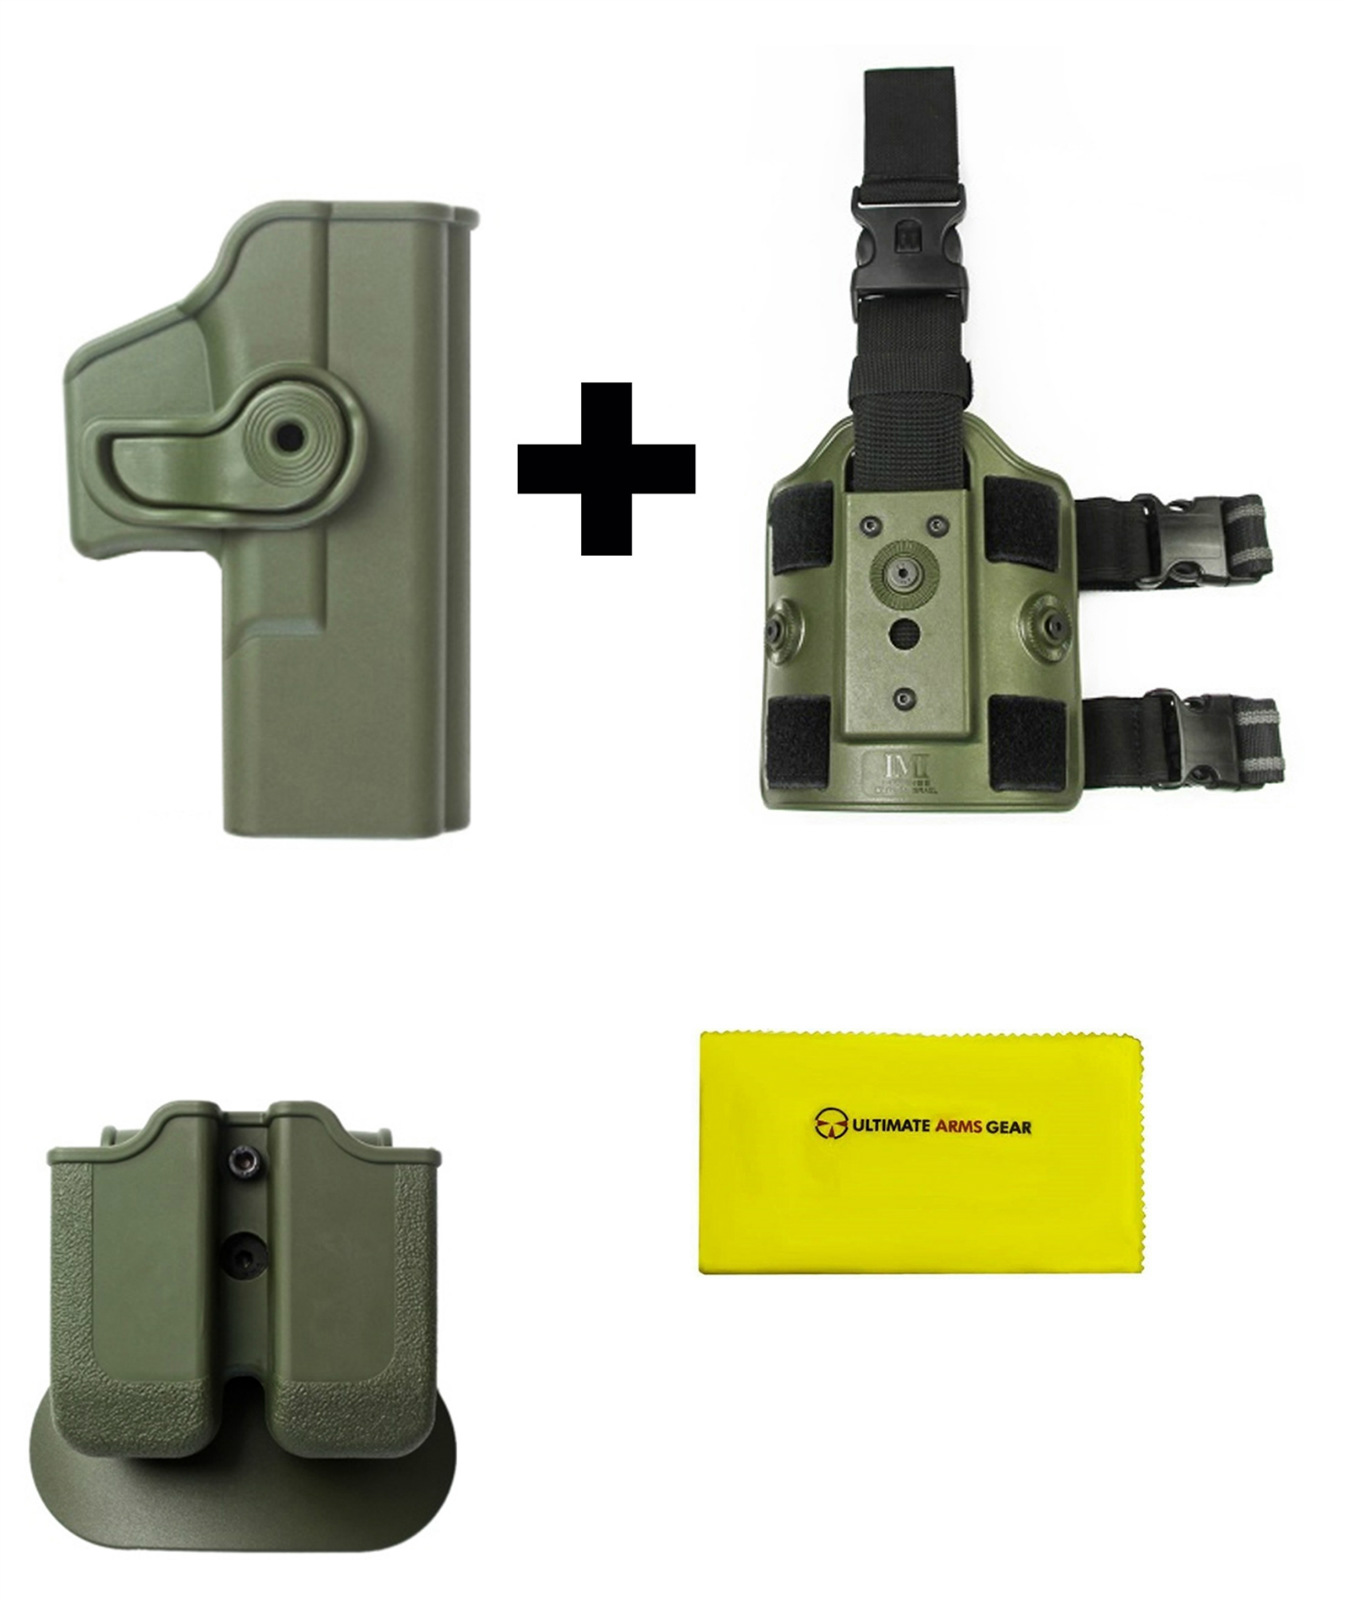 IMI Defense Z2000 MP00 Double Mag Holder & Paddle + Z1020 Rotate Holster Glock 19 23 25 28 32 Right Hand Gen 4... by